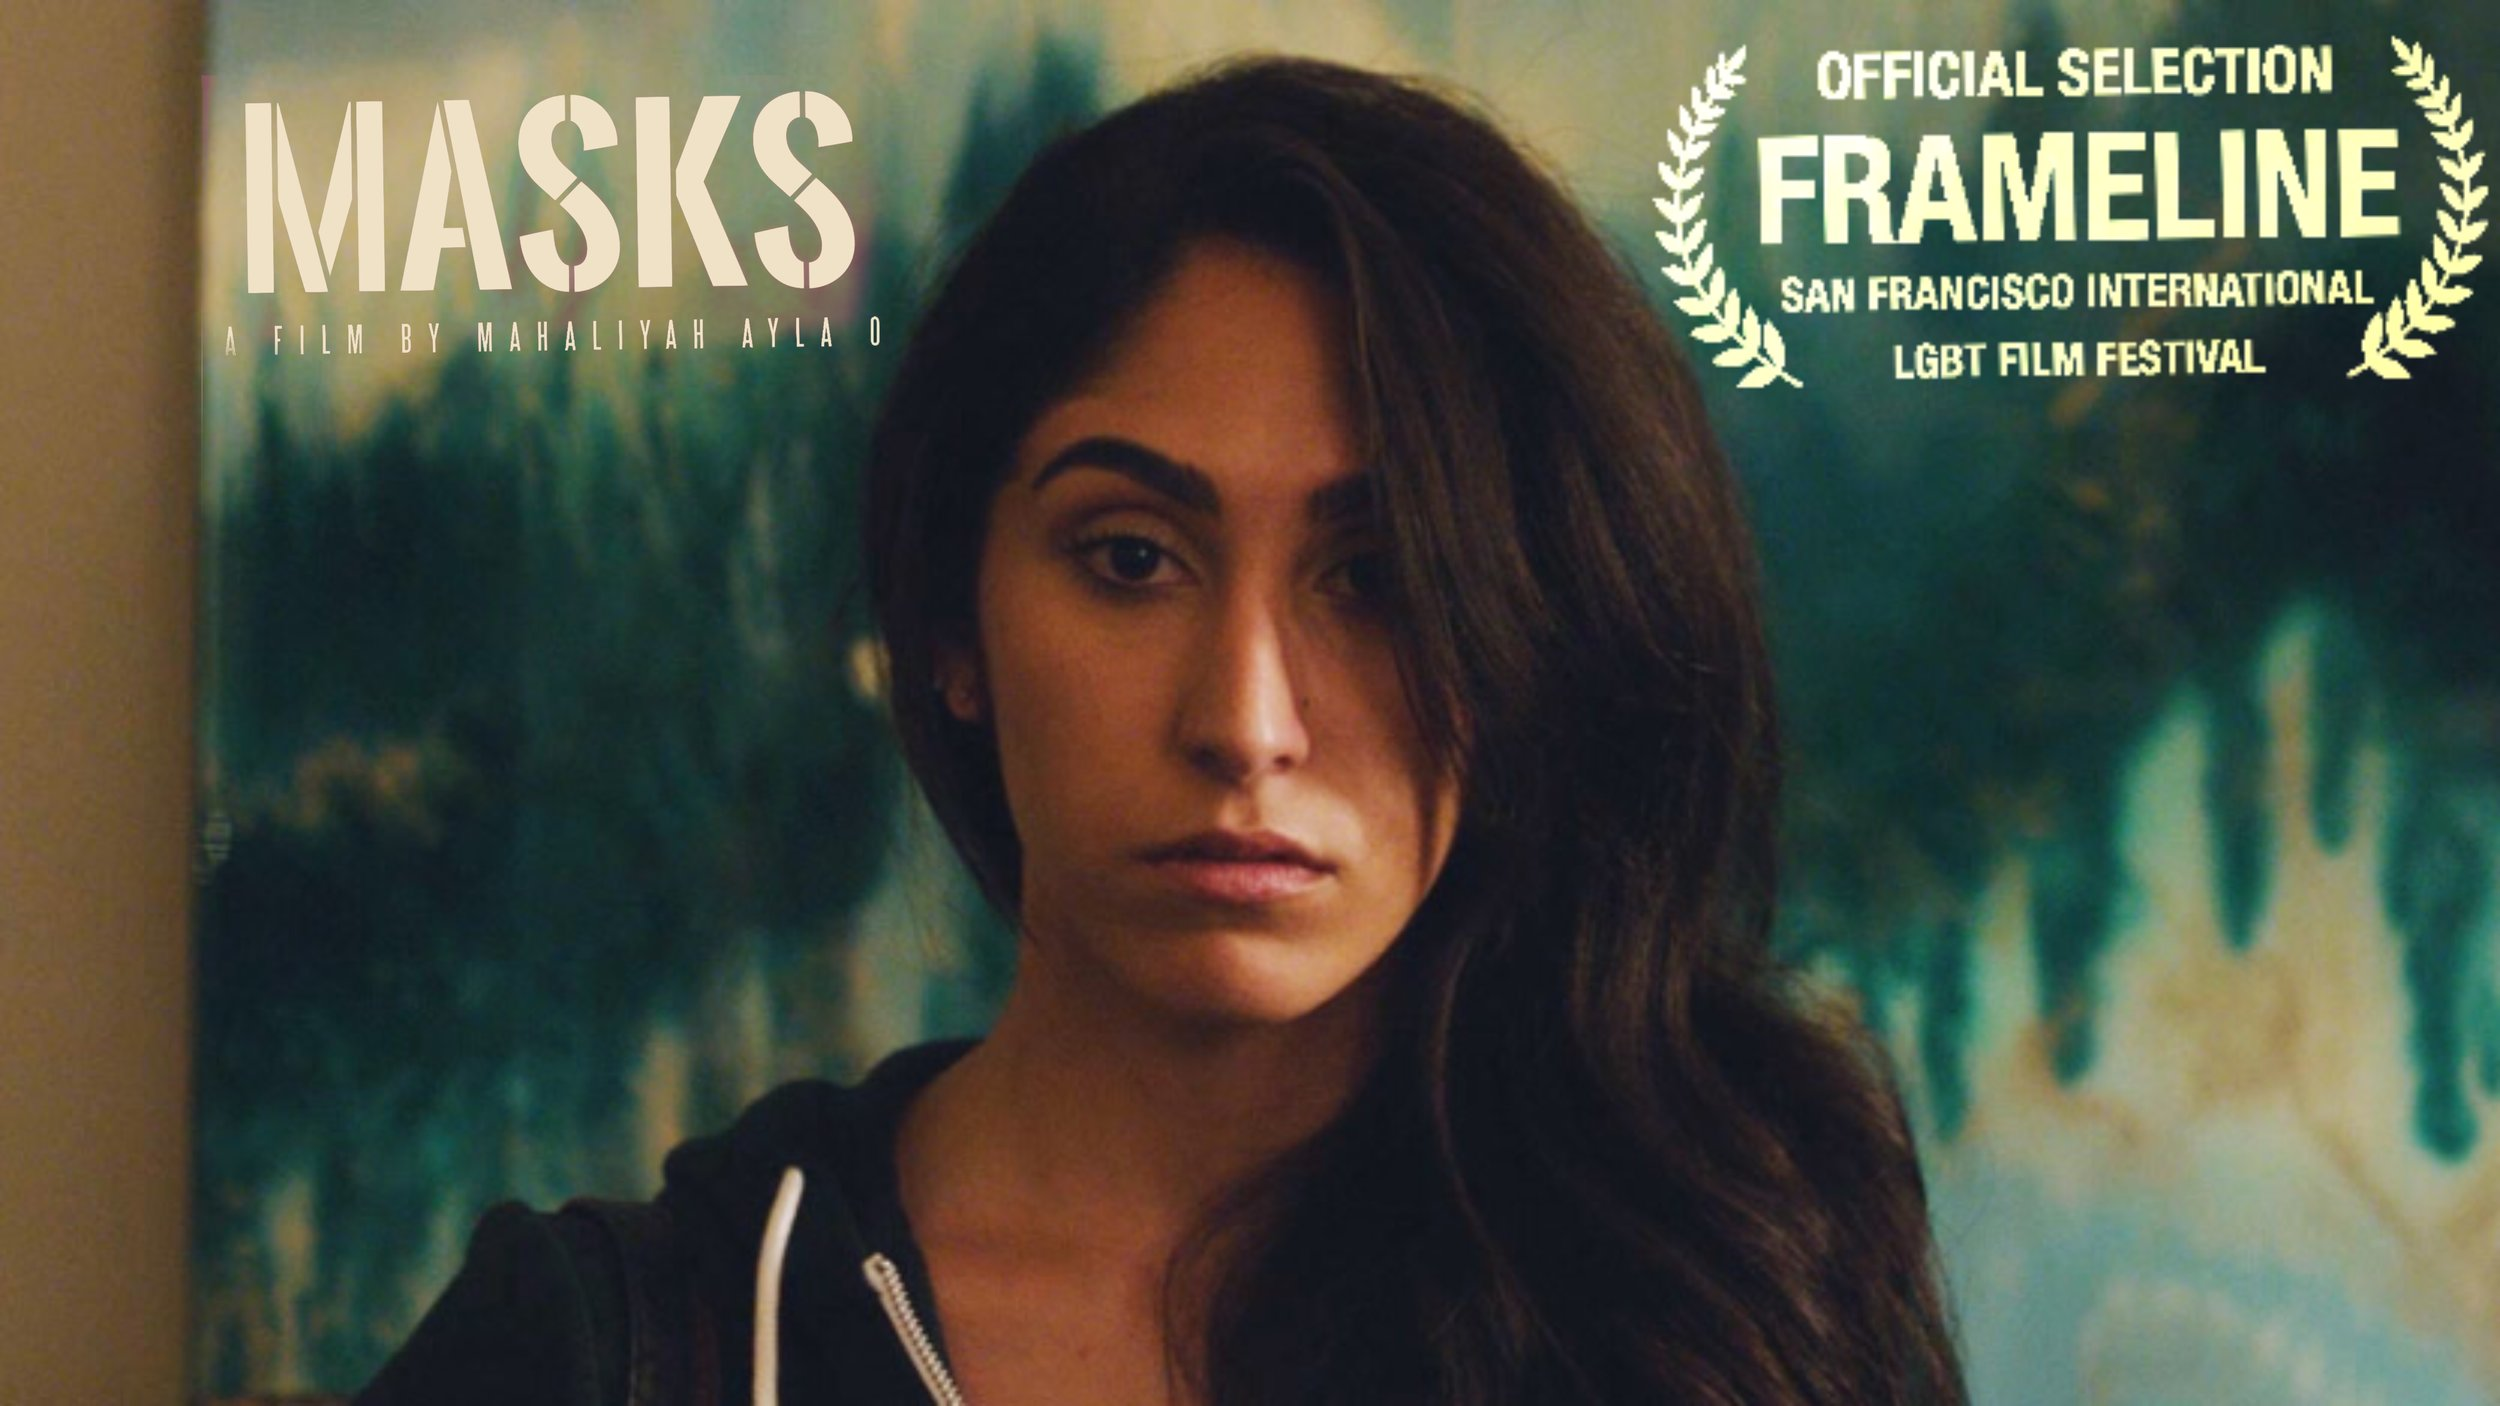 Masks_Frameline_Official Selection (1).jpeg